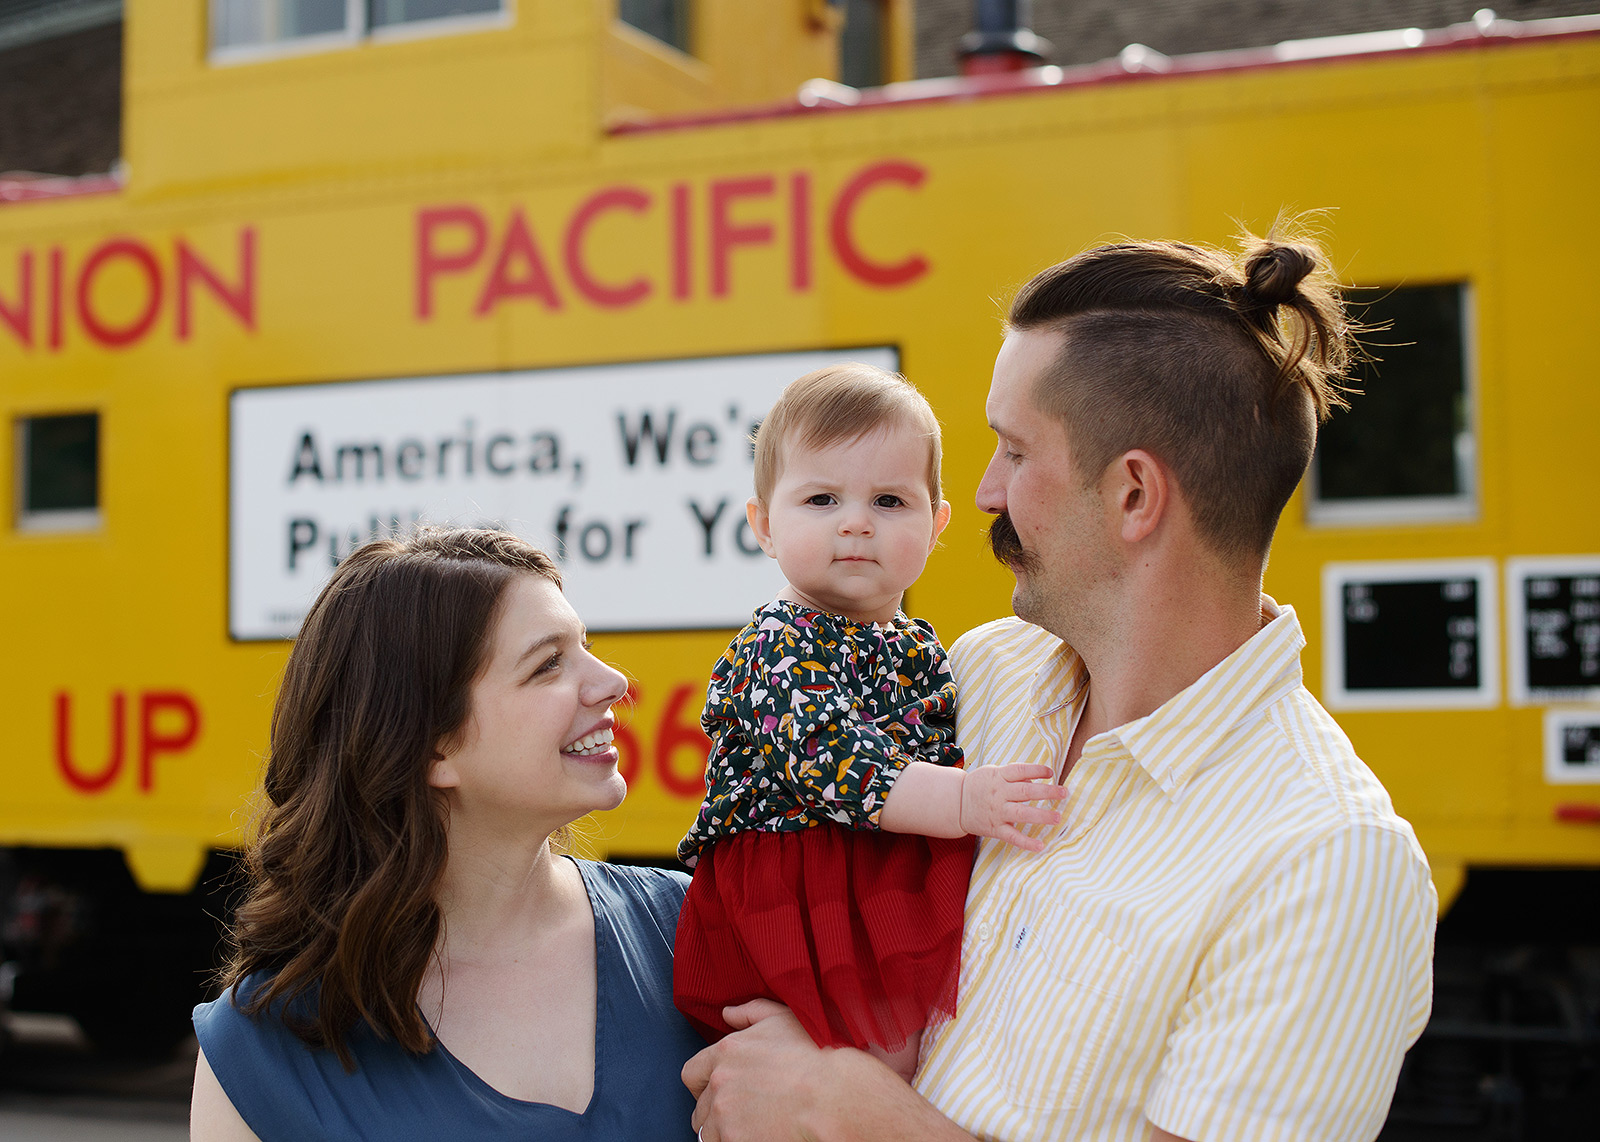 Family photo in front of Union Pacific trains in Old Sacramento